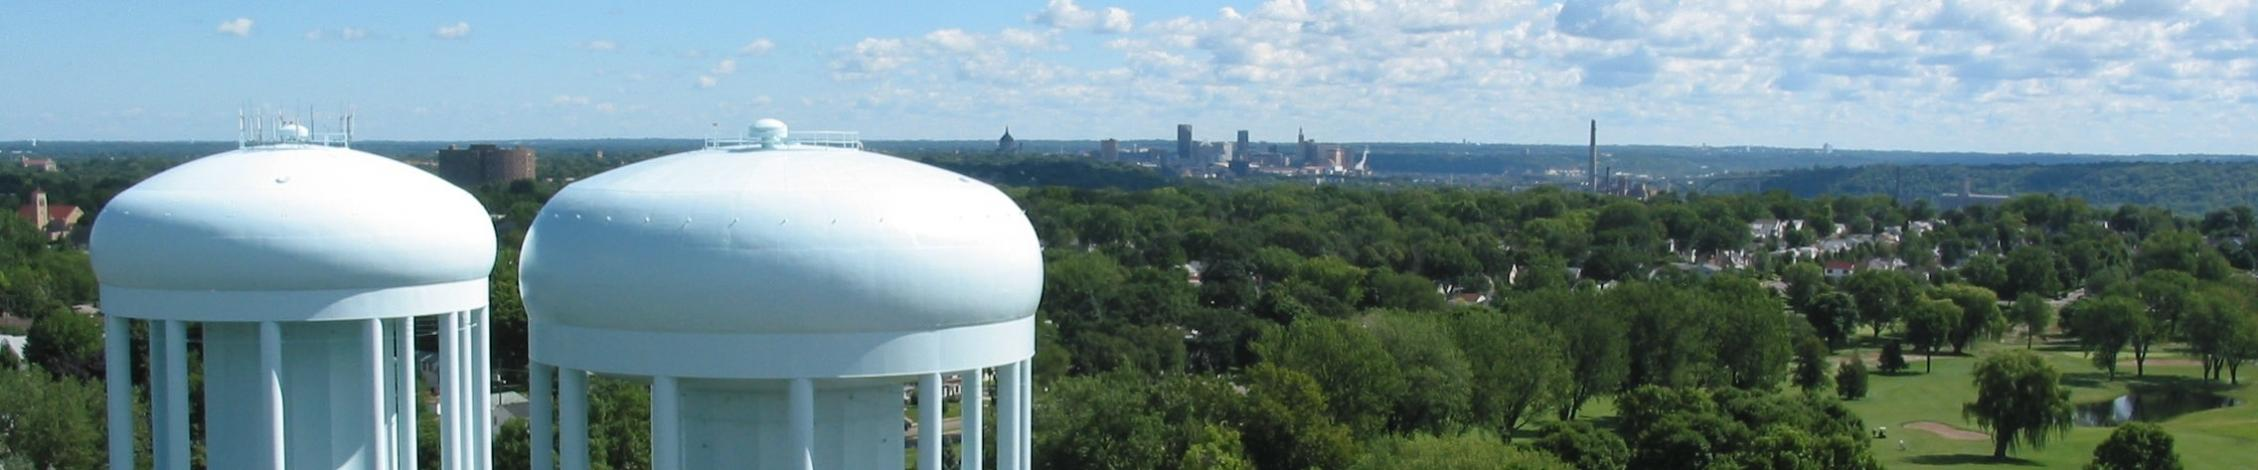 View of water towers in Saint Paul